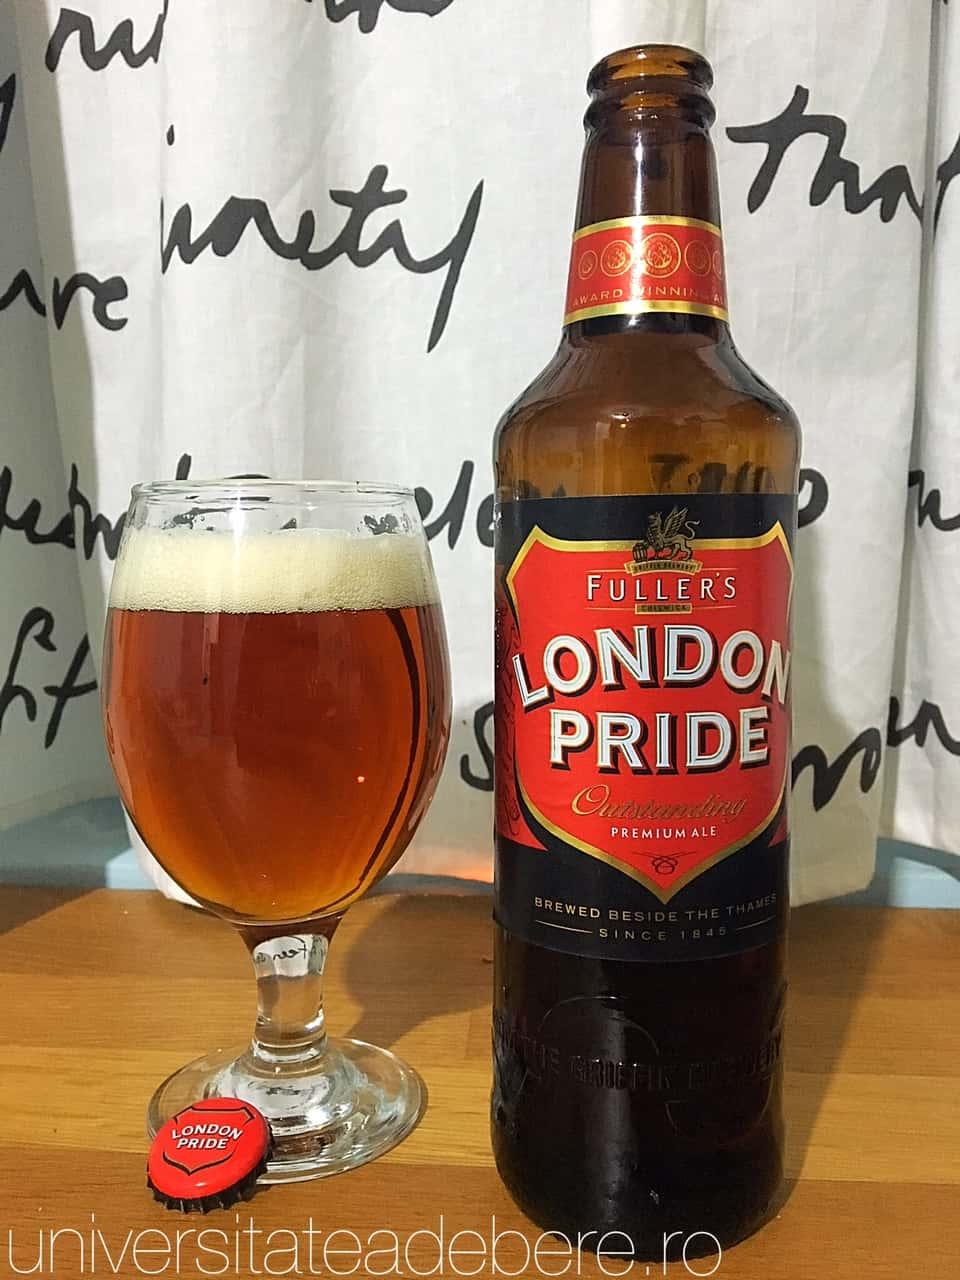 Photo of London Pride, berea de siguranta